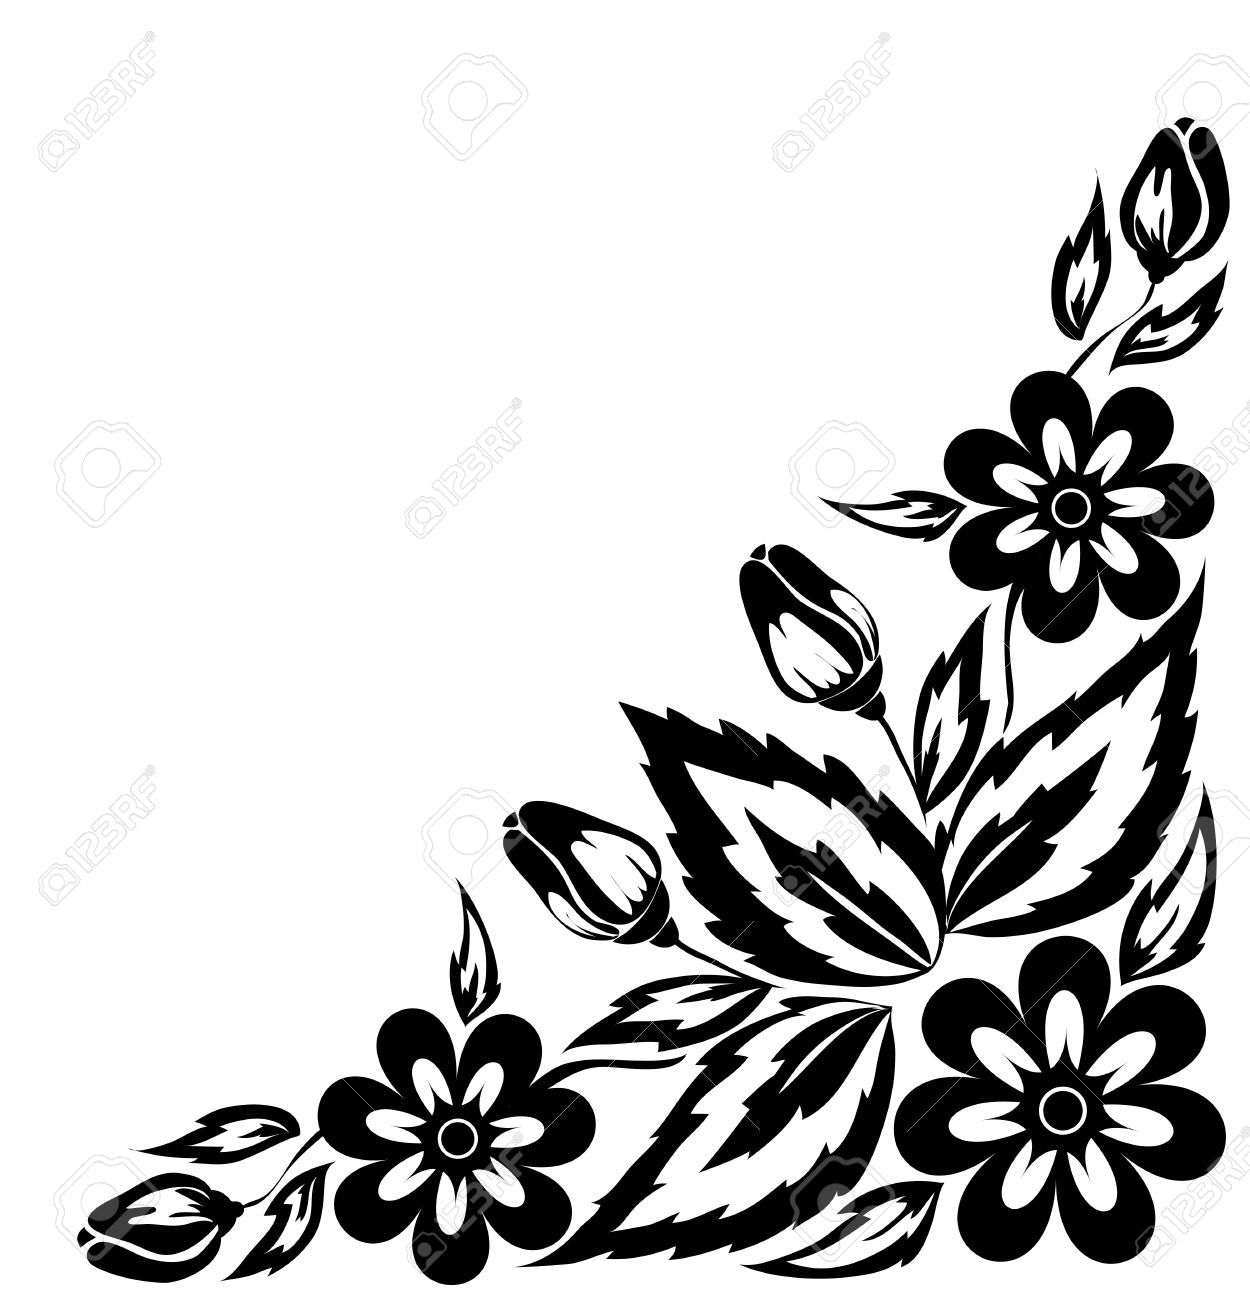 1250x1300 Floral Decorative Element Border And Patterns Vector